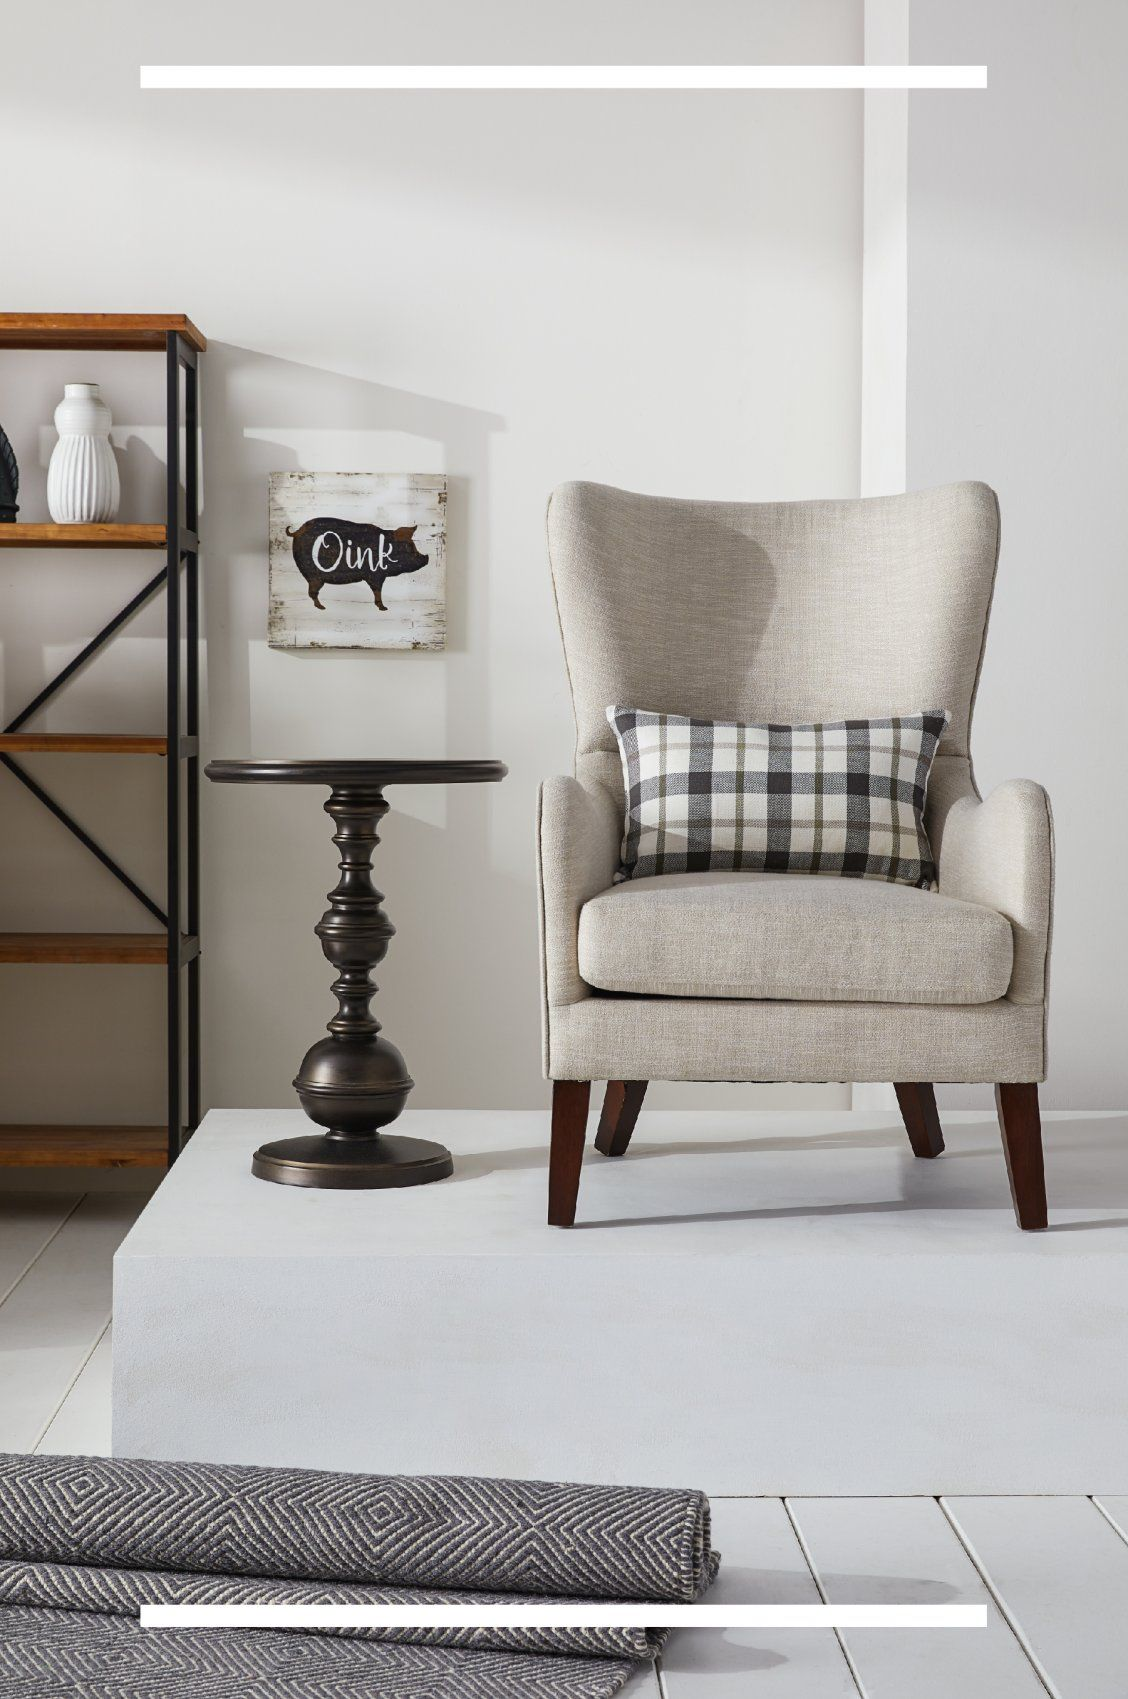 Give your space a comfy, lived-in look and feel with beautiful Farmhouse furniture and decor from Overstock!  #farmhouse #farmhousestyle #farmhouseideas #farmhousebedroom #farmhousedesign #decor #decorideas #homedecor #homegoods #homeideas #apartmentideas #furniture